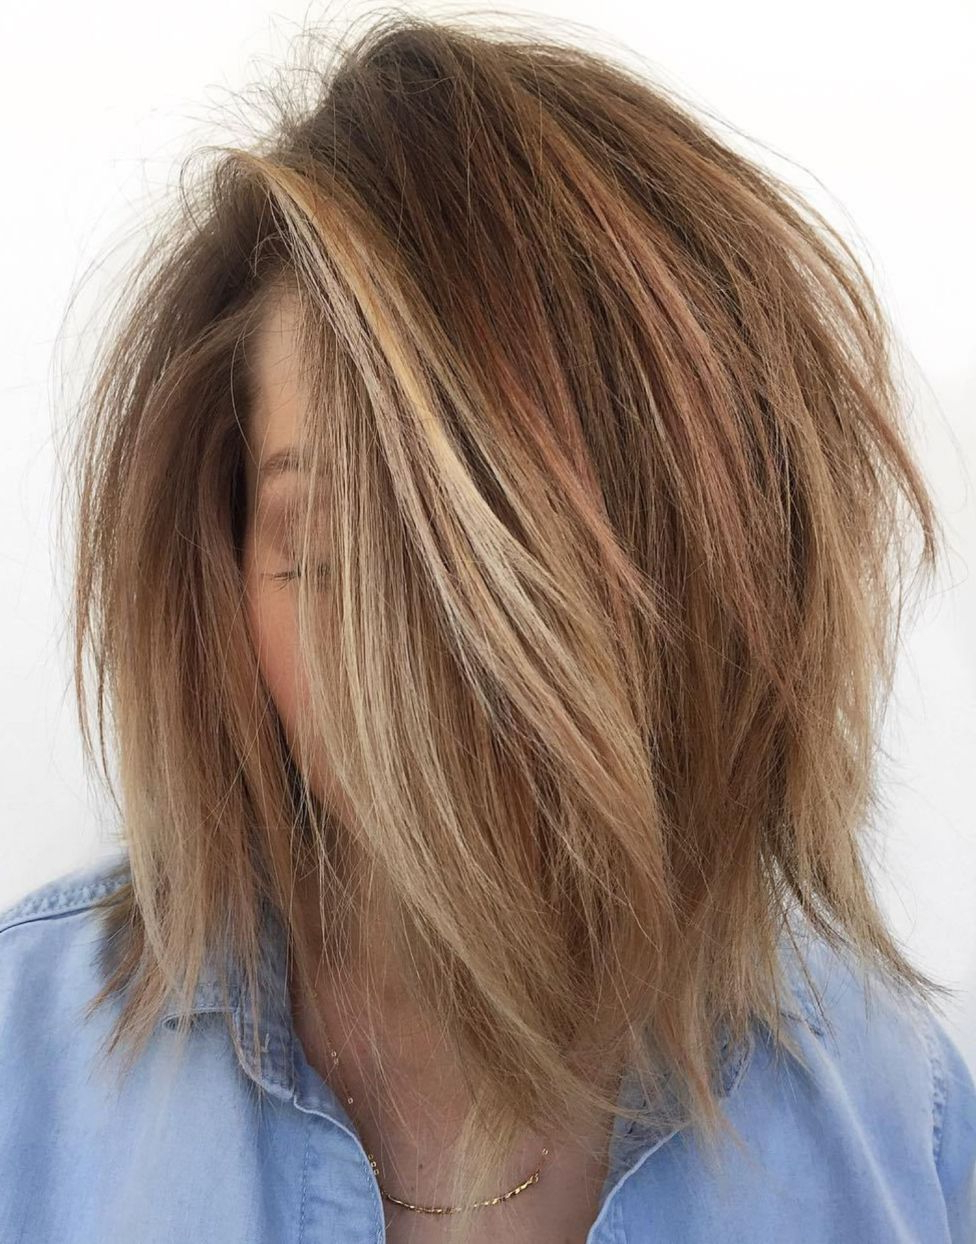 60 Messy Bob Hairstyles For Your Trendy Casual Looks | Hair Throughout Disheveled Brunette Choppy Bob Hairstyles (View 17 of 20)